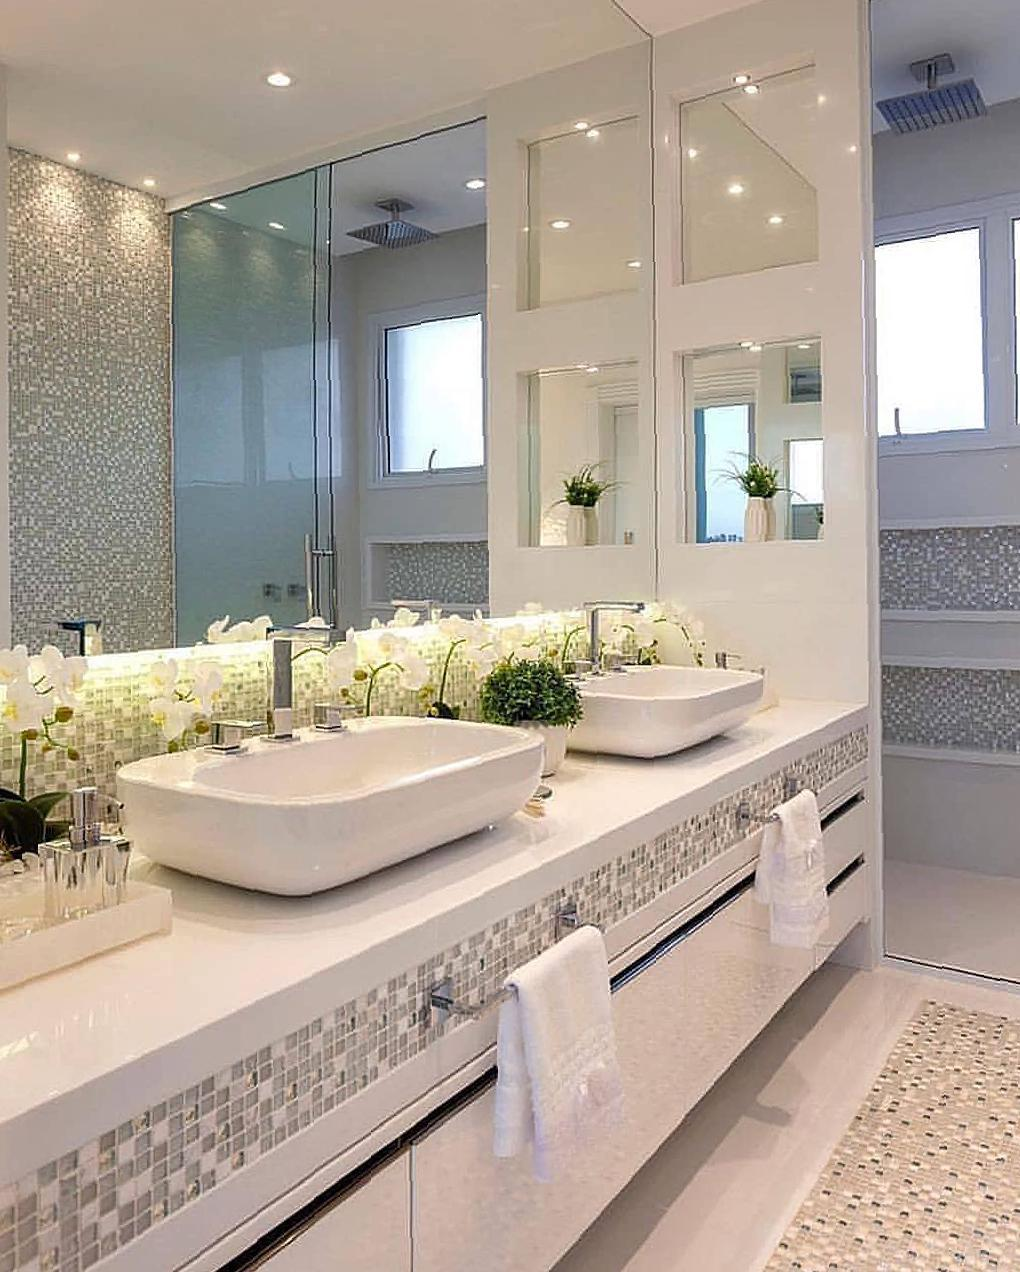 Beautiful Bathroom Decorations that Let Your Home Become More Warm and Comfortable! - Page 5 of 19 - Guide19 Blog